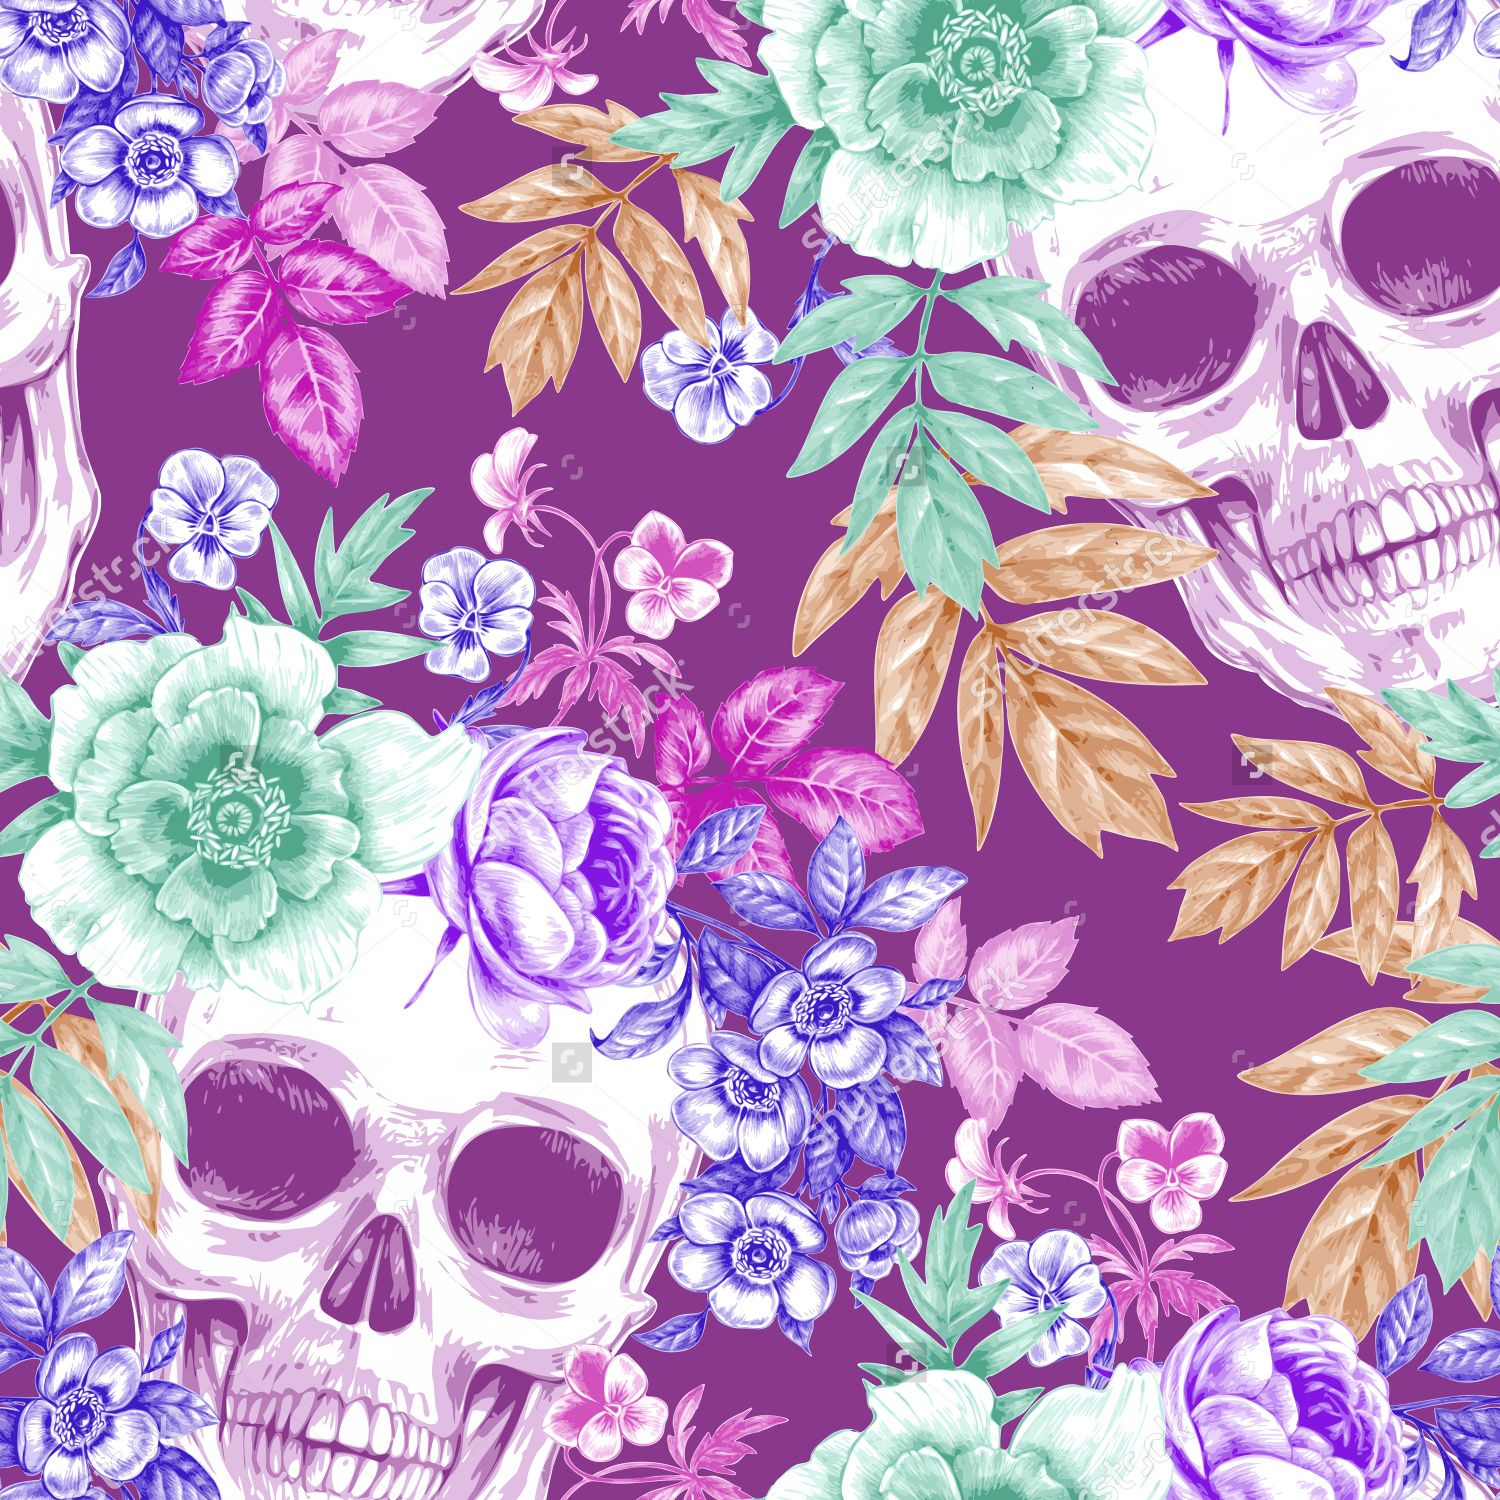 Pin By Amy Solarczyk On SKULLS N SUCH